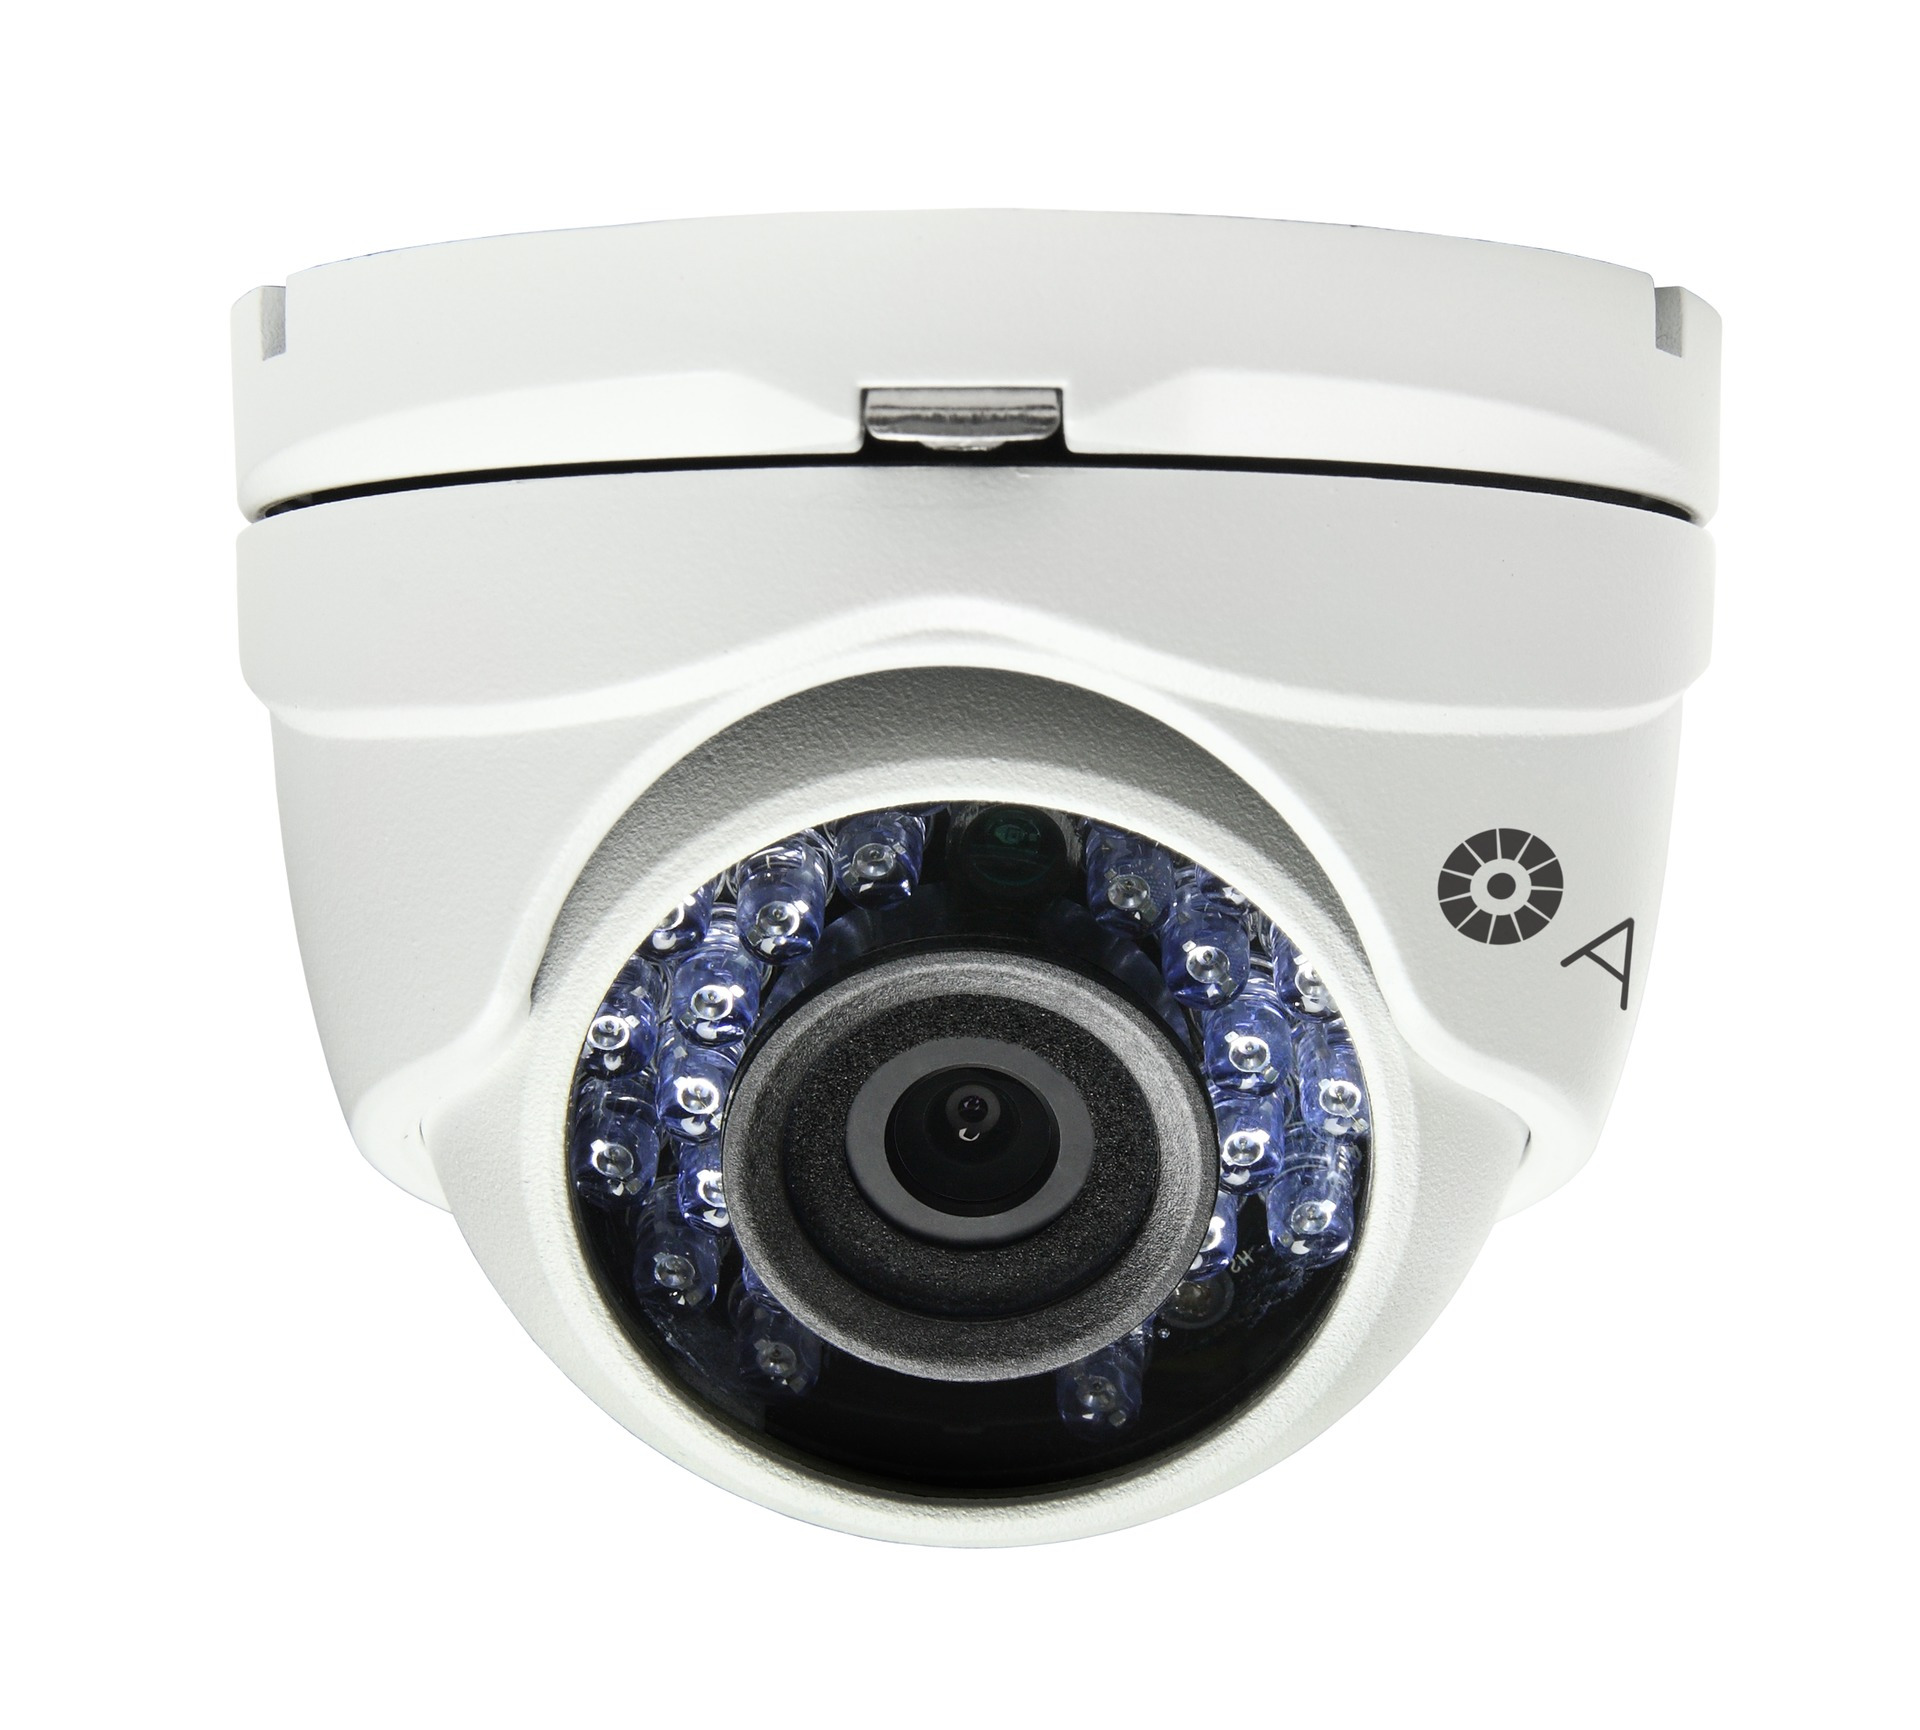 Alibi Gray Dome Camera